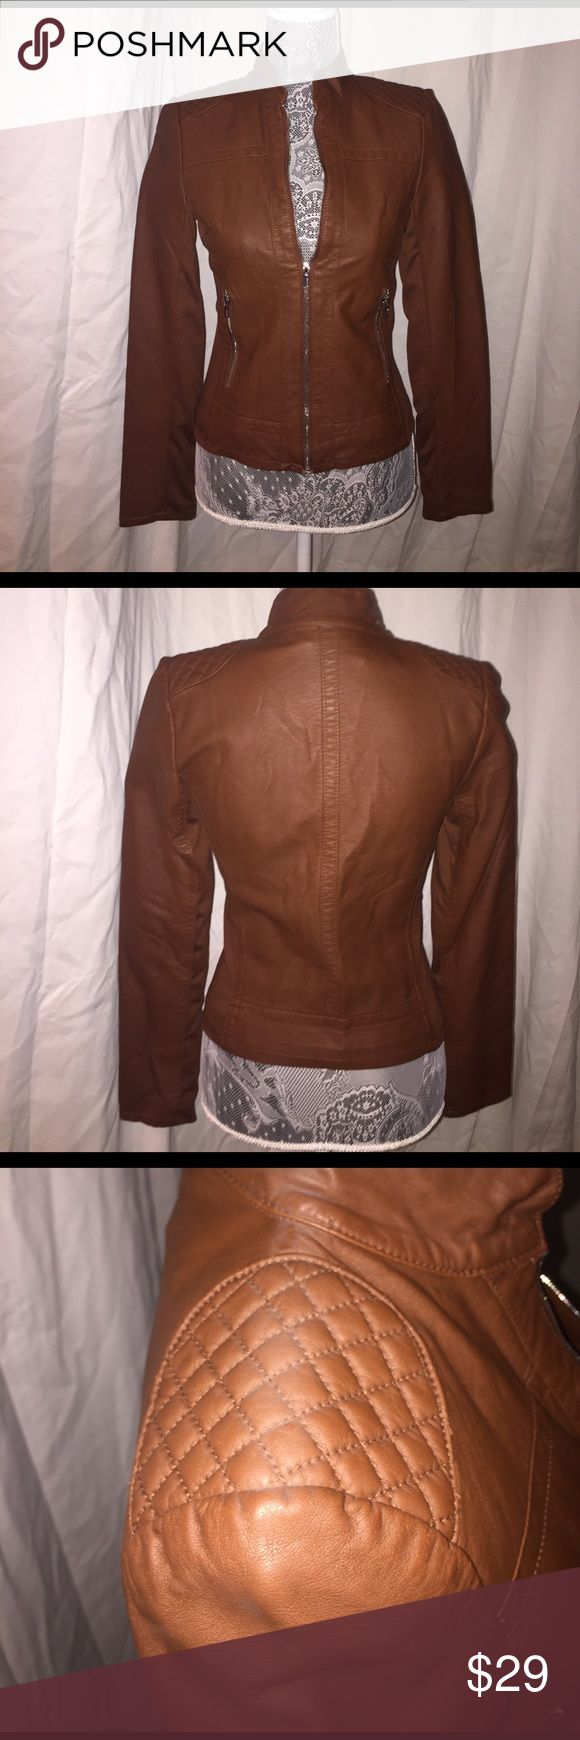 Brown Faux Leather Jacket Brown Faux Leather Jacket. Express Jackets & Coats